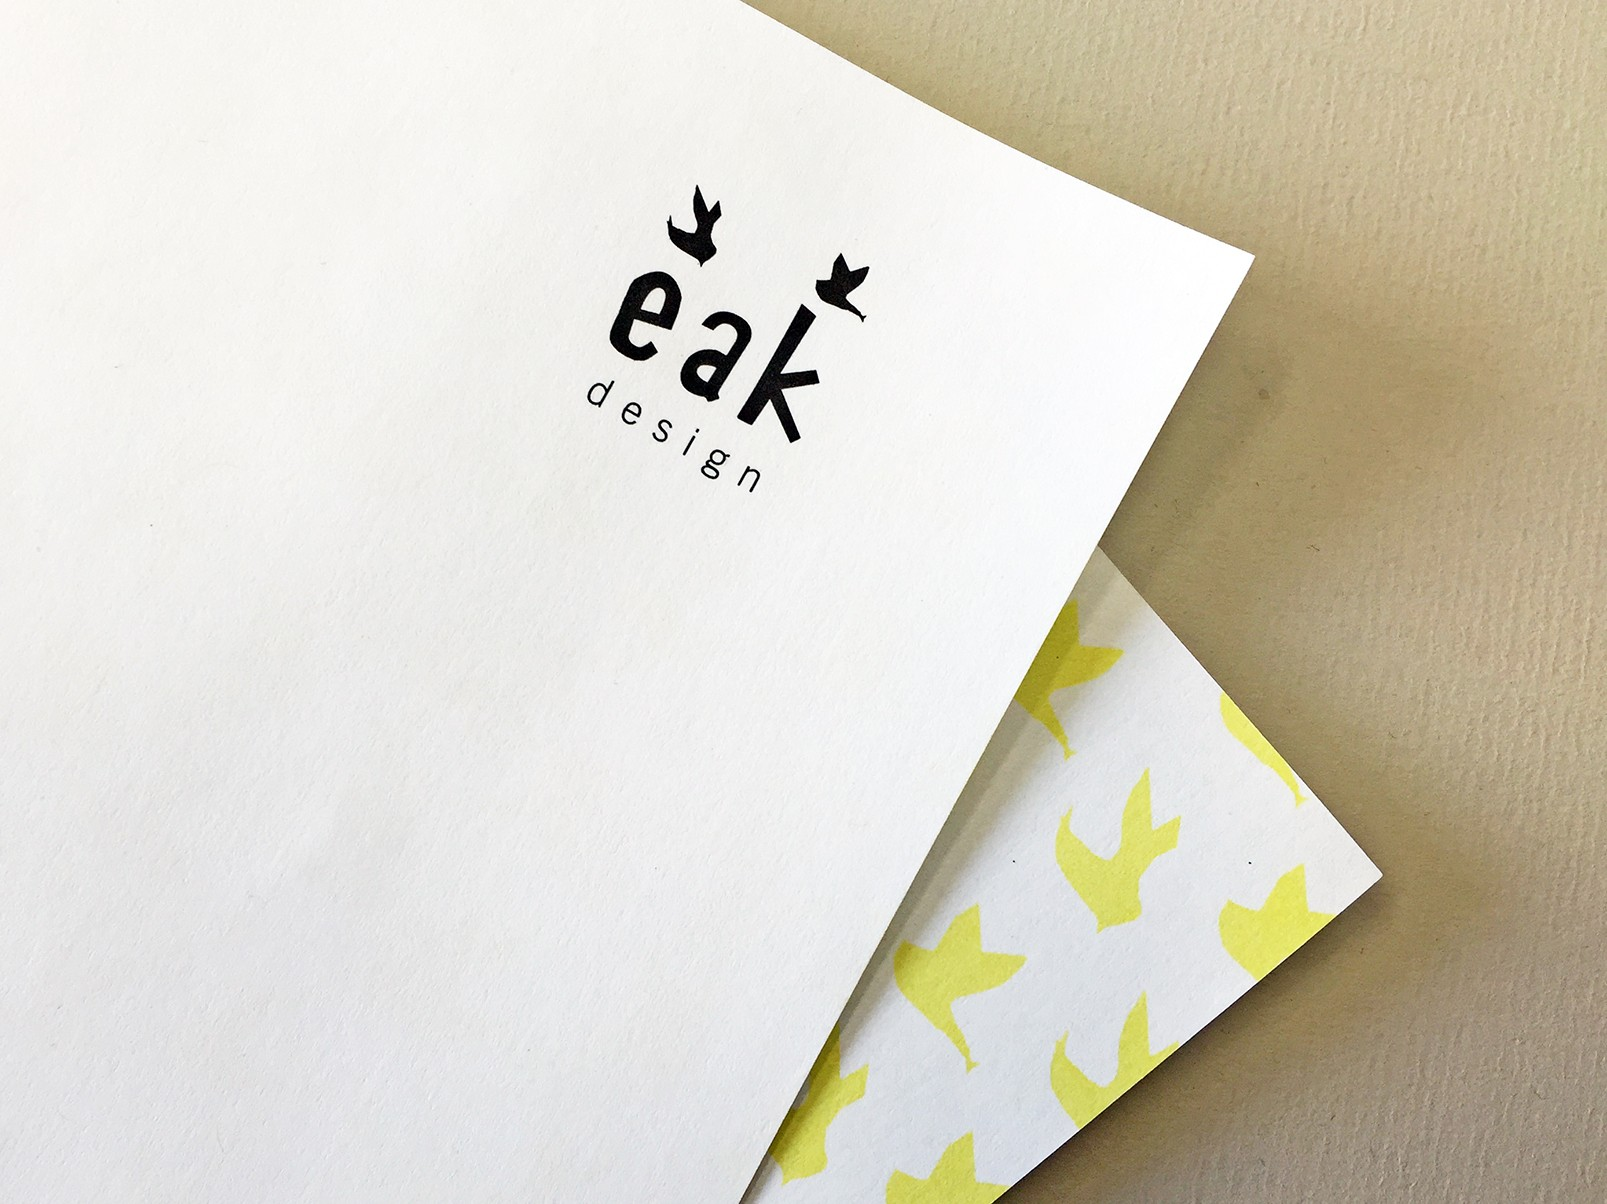 Letterhead Printing from A Local Printer